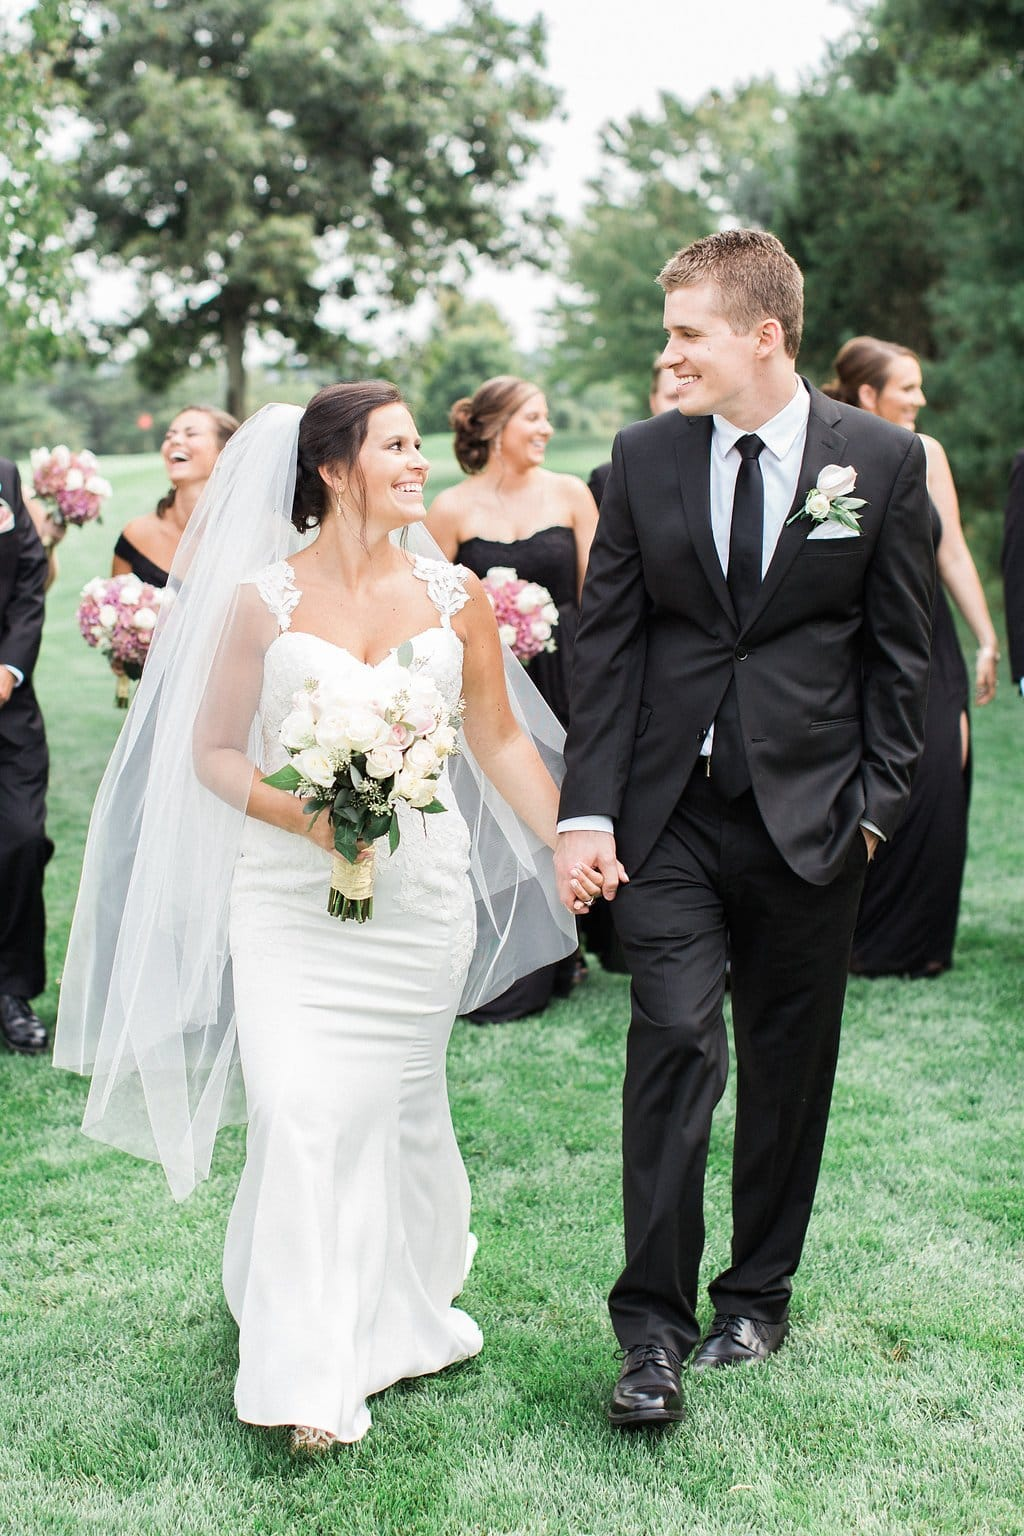 Bride and groom walking and holding hands looking at each other with bridal party